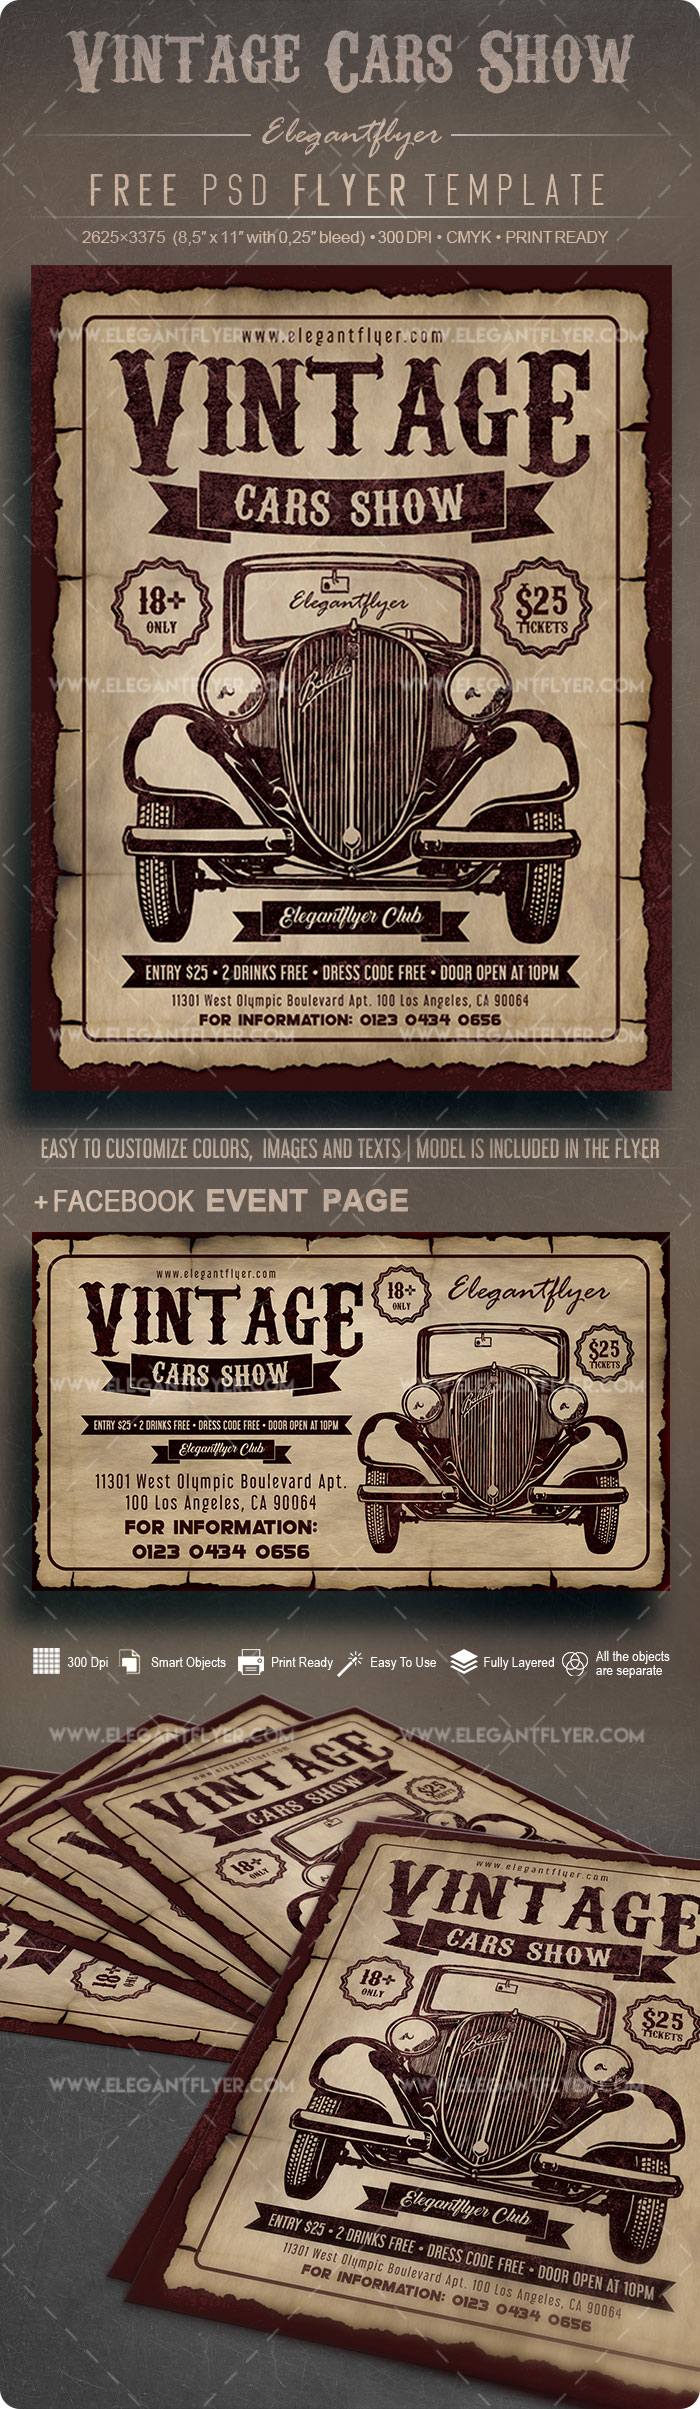 Vintage Cars Show – Free Flyer PSD Template